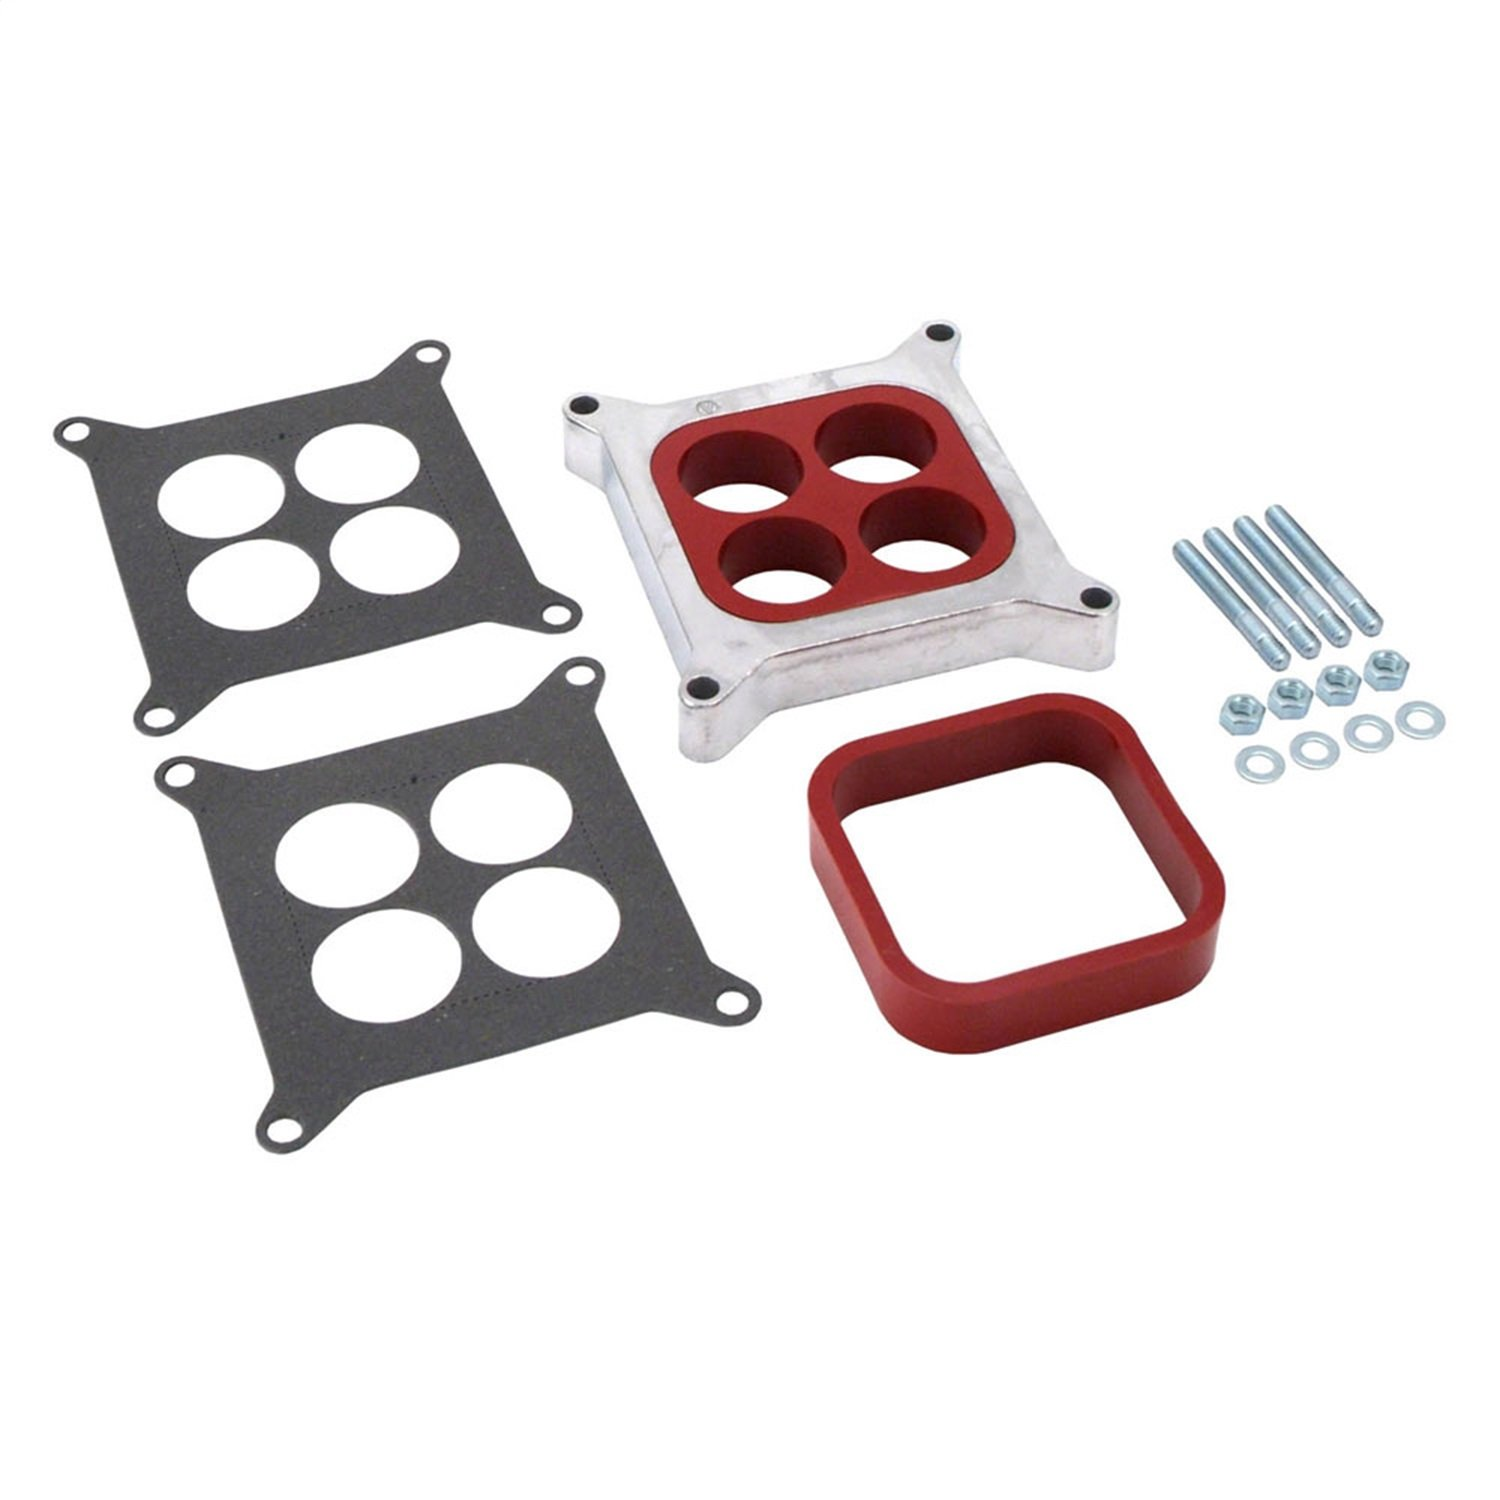 Spectre Performance 5764 Universal 4-Hole/Open Carburetor Spacer by Spectre Performance